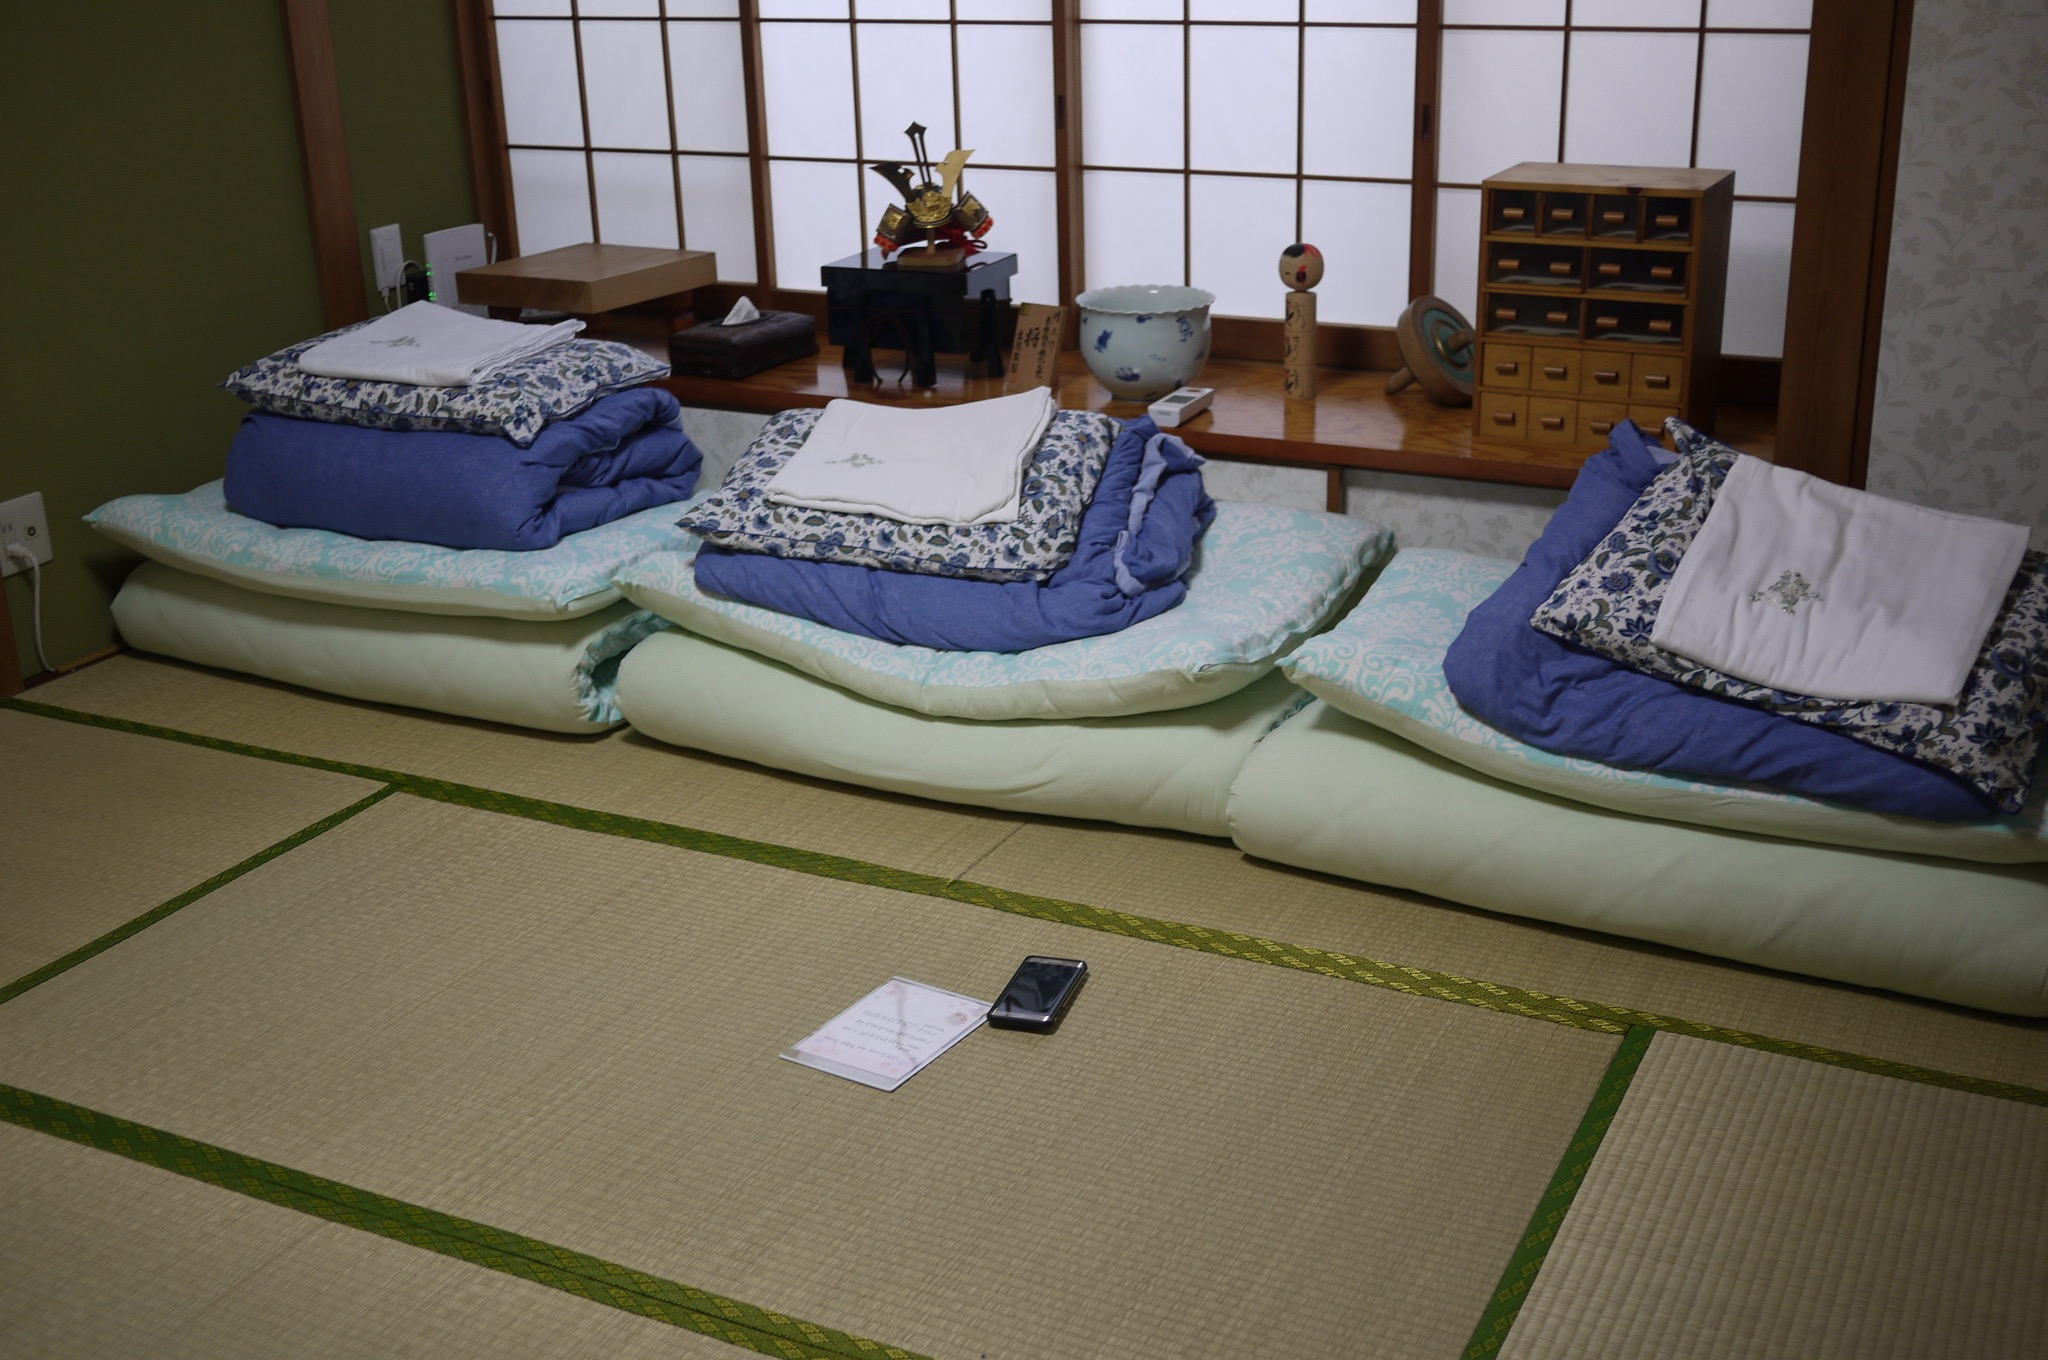 Our Airbnb apartment in Keio-Tamagawa